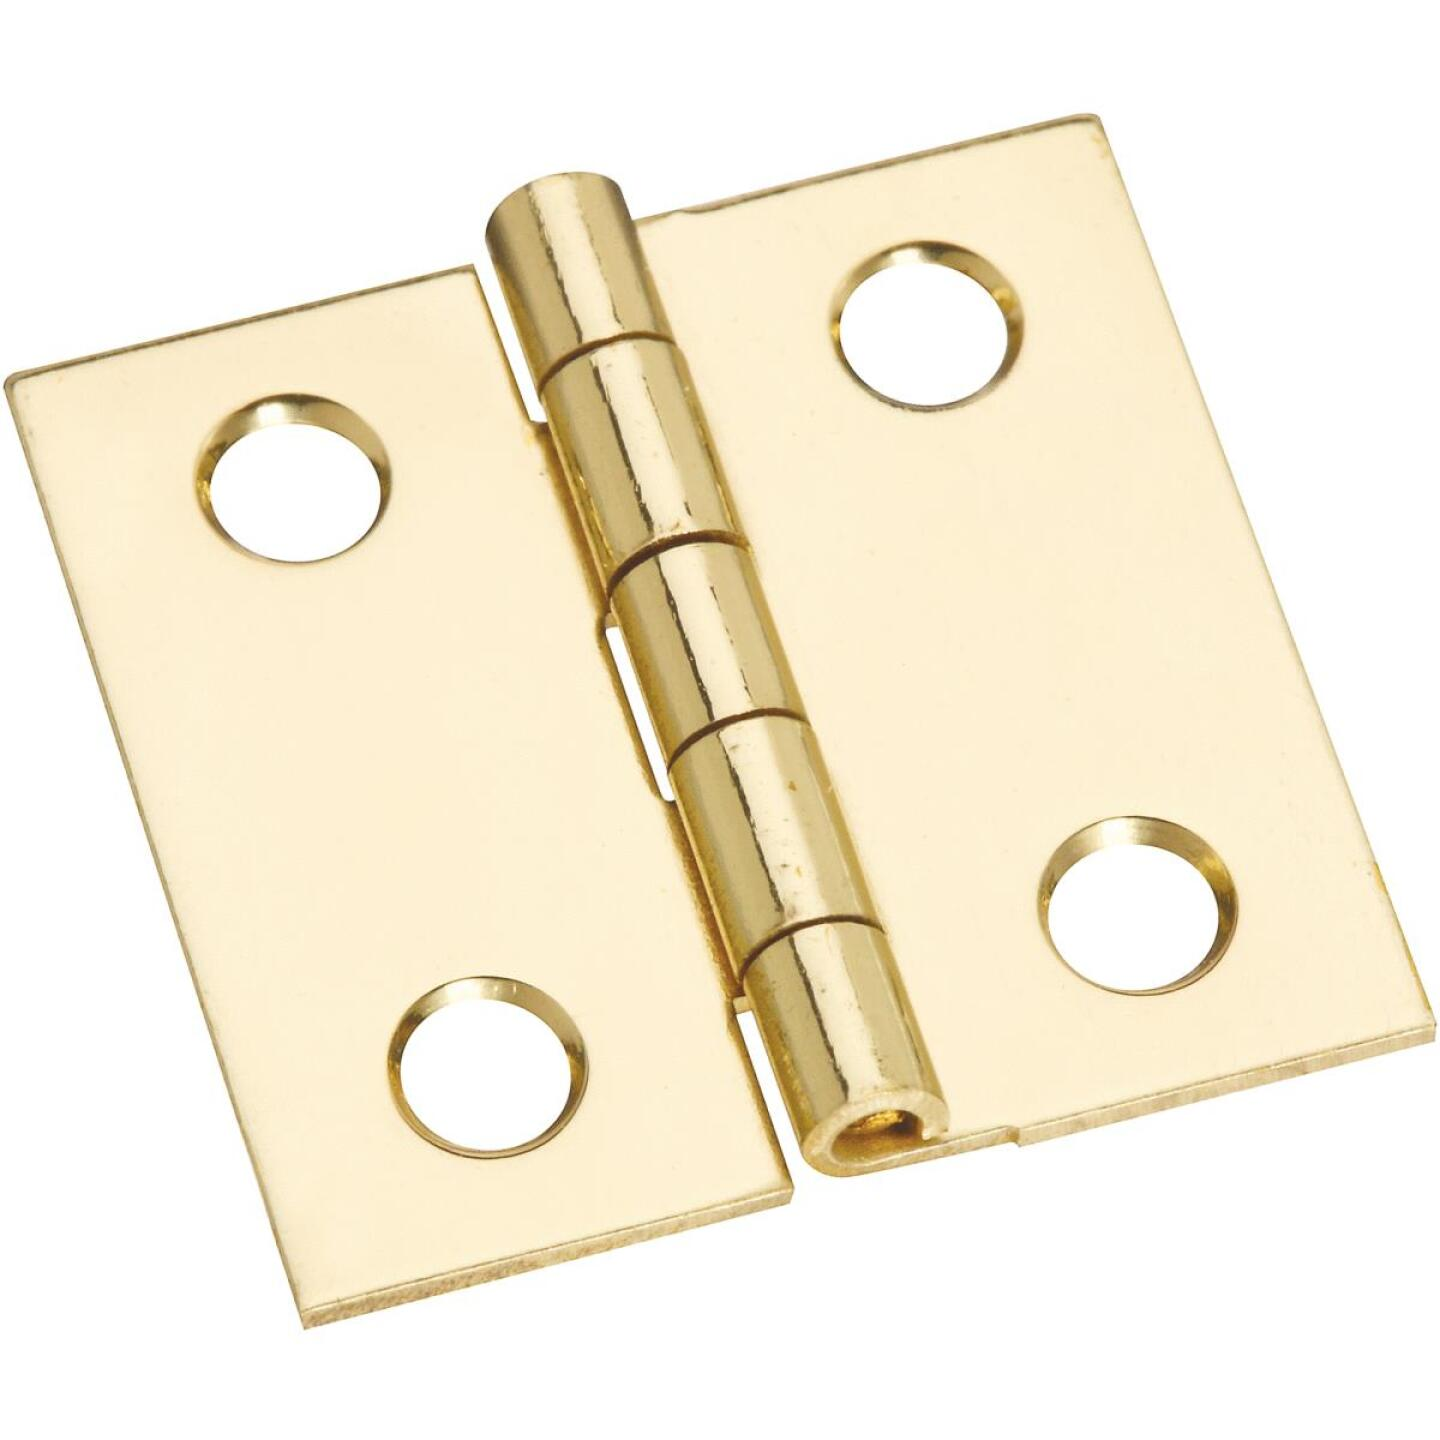 National 1 In. x 1 In. Brass Medium Decorative Hinge (4-Pack) Image 1